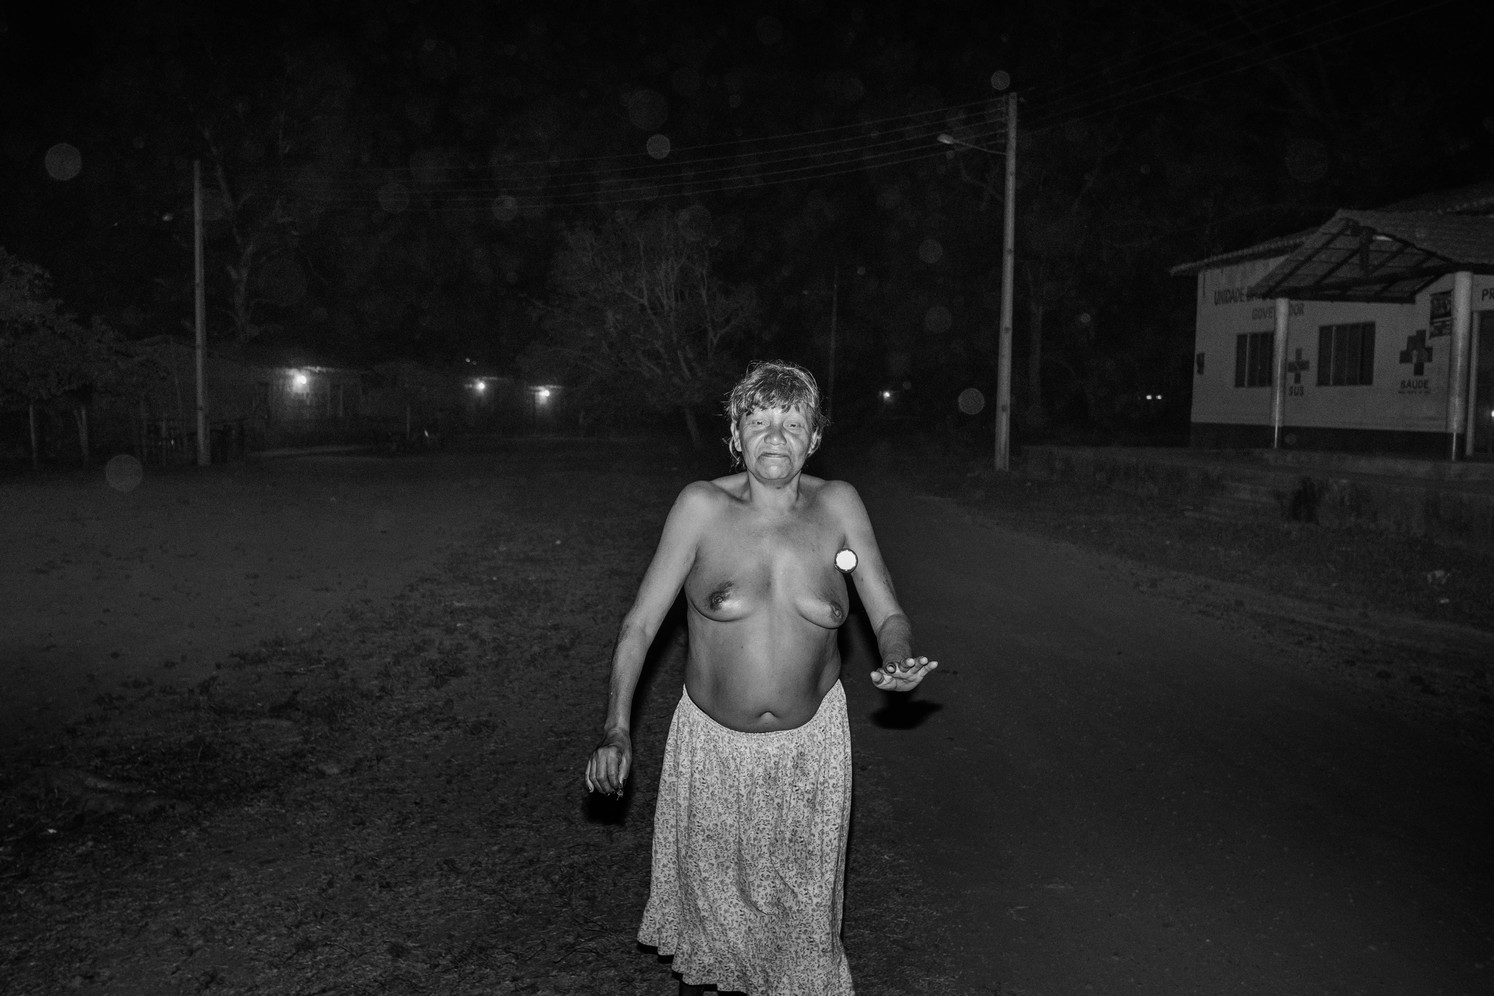 A drunk tribewoman in the Gaviao's village inside the Governador indigenous land.